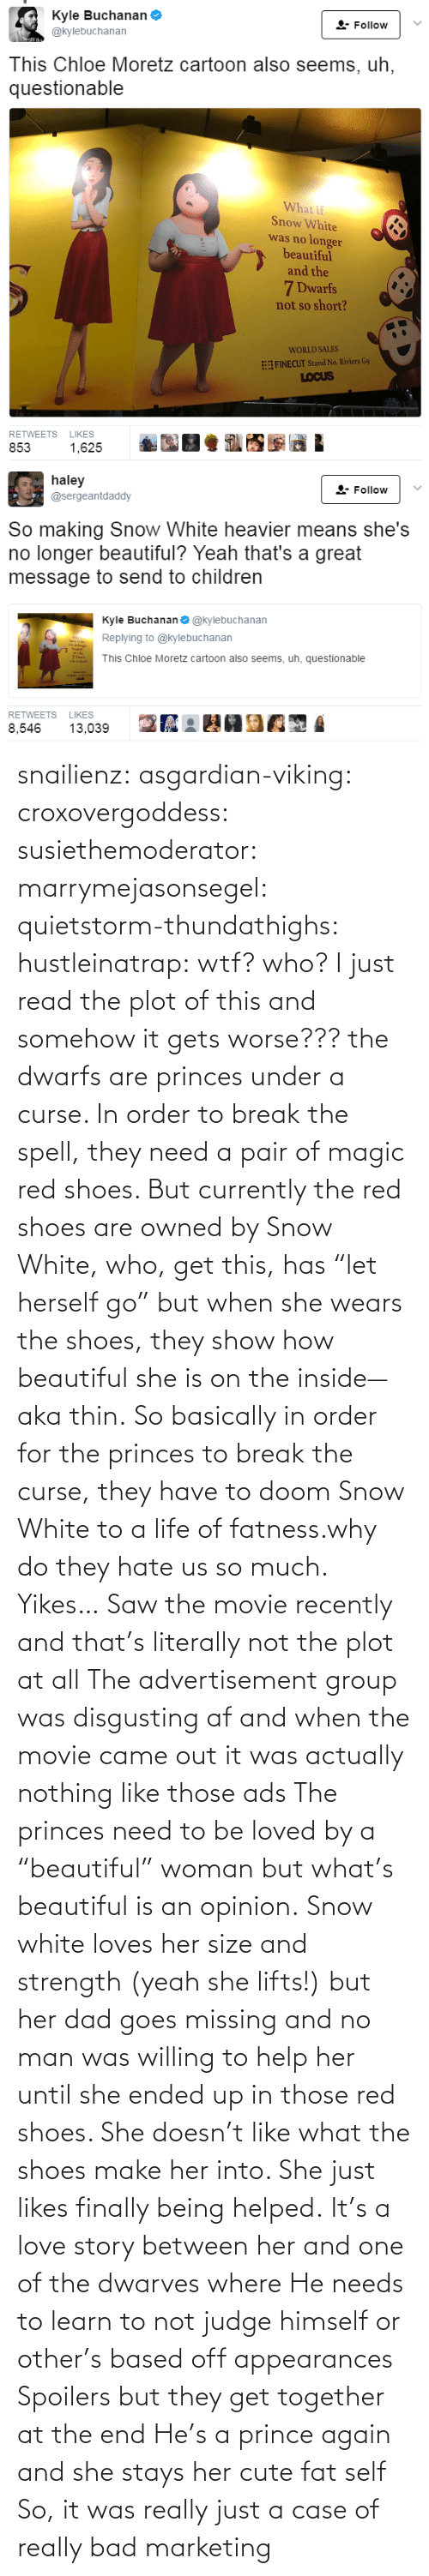 "cute: snailienz: asgardian-viking:  croxovergoddess:  susiethemoderator:  marrymejasonsegel:   quietstorm-thundathighs:  hustleinatrap: wtf?  who?   I just read the plot of this and somehow it gets worse??? the dwarfs are princes under a curse. In order to break the spell, they need a pair of magic red shoes. But currently the red shoes are owned by Snow White, who, get this, has ""let herself go"" but when she wears the shoes, they show how beautiful she is on the inside—aka thin. So basically in order for the princes to break the curse, they have to doom Snow White to a life of fatness.why do they hate us so much.   Yikes…    Saw the movie recently and that's literally not the plot at all The advertisement group was disgusting af and when the movie came out it was actually nothing like those ads The princes need to be loved by a ""beautiful"" woman but what's beautiful is an opinion. Snow white loves her size and strength (yeah she lifts!) but her dad goes missing and no man was willing to help her until she ended up in those red shoes. She doesn't like what the shoes make her into. She just likes finally being helped. It's a love story between her and one of the dwarves where He needs to learn to not judge himself or other's based off appearances  Spoilers but they get together at the end He's a prince again and she stays her cute fat self  So, it was really just a case of really bad marketing"